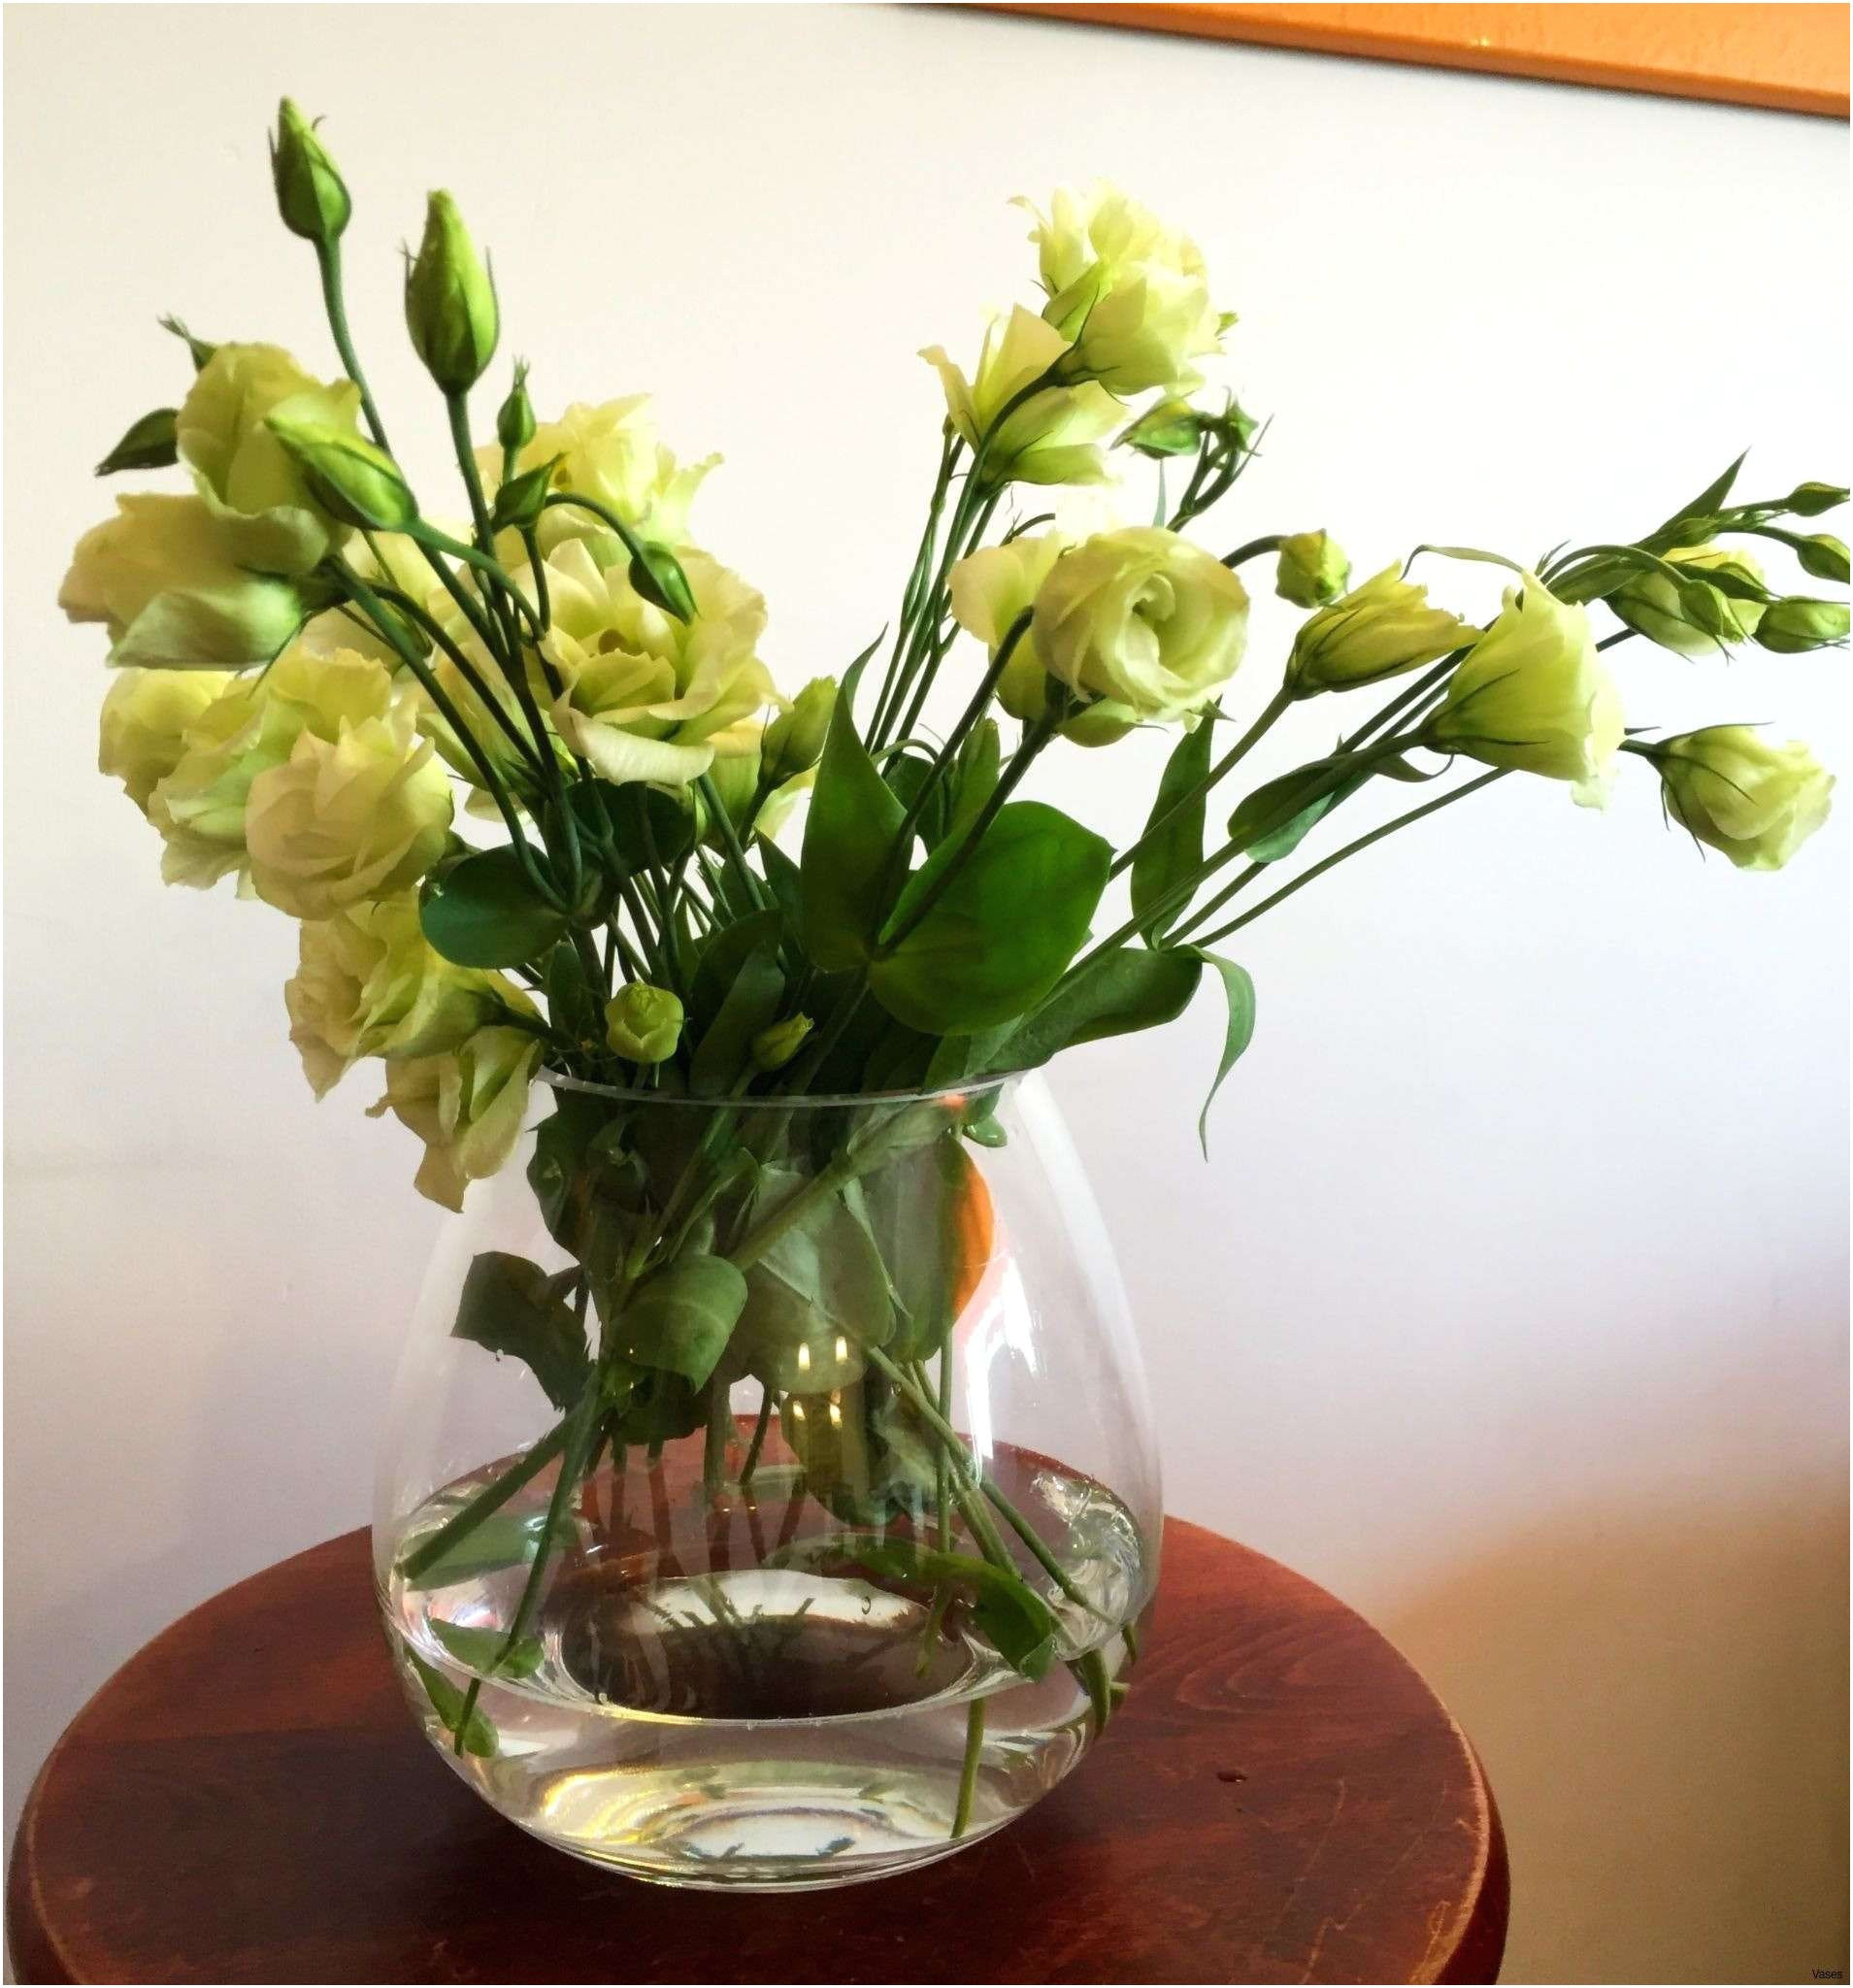 Lime Green Floor Vase Of Tall Green Vase Photos Tiger Height Awful Flower Vase Table 04h Intended for Tall Green Vase Photos Tiger Height Awful Flower Vase Table 04h Vases Tablei 0d Clipart